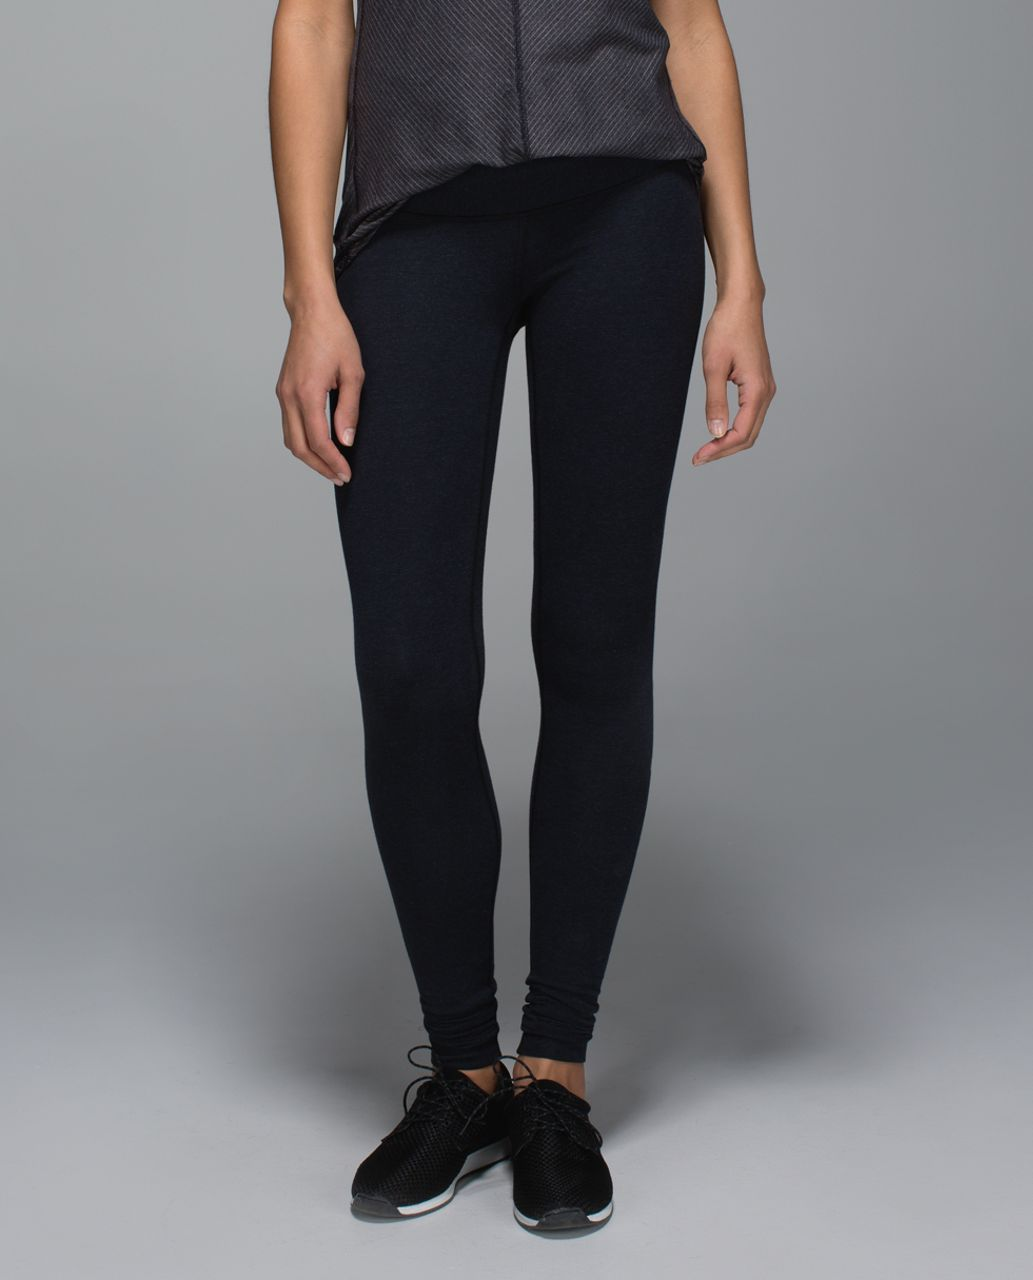 Lululemon Wunder Under Pant *Cotton (Roll Down) - Wee Stripe Black Heathered Inkwell